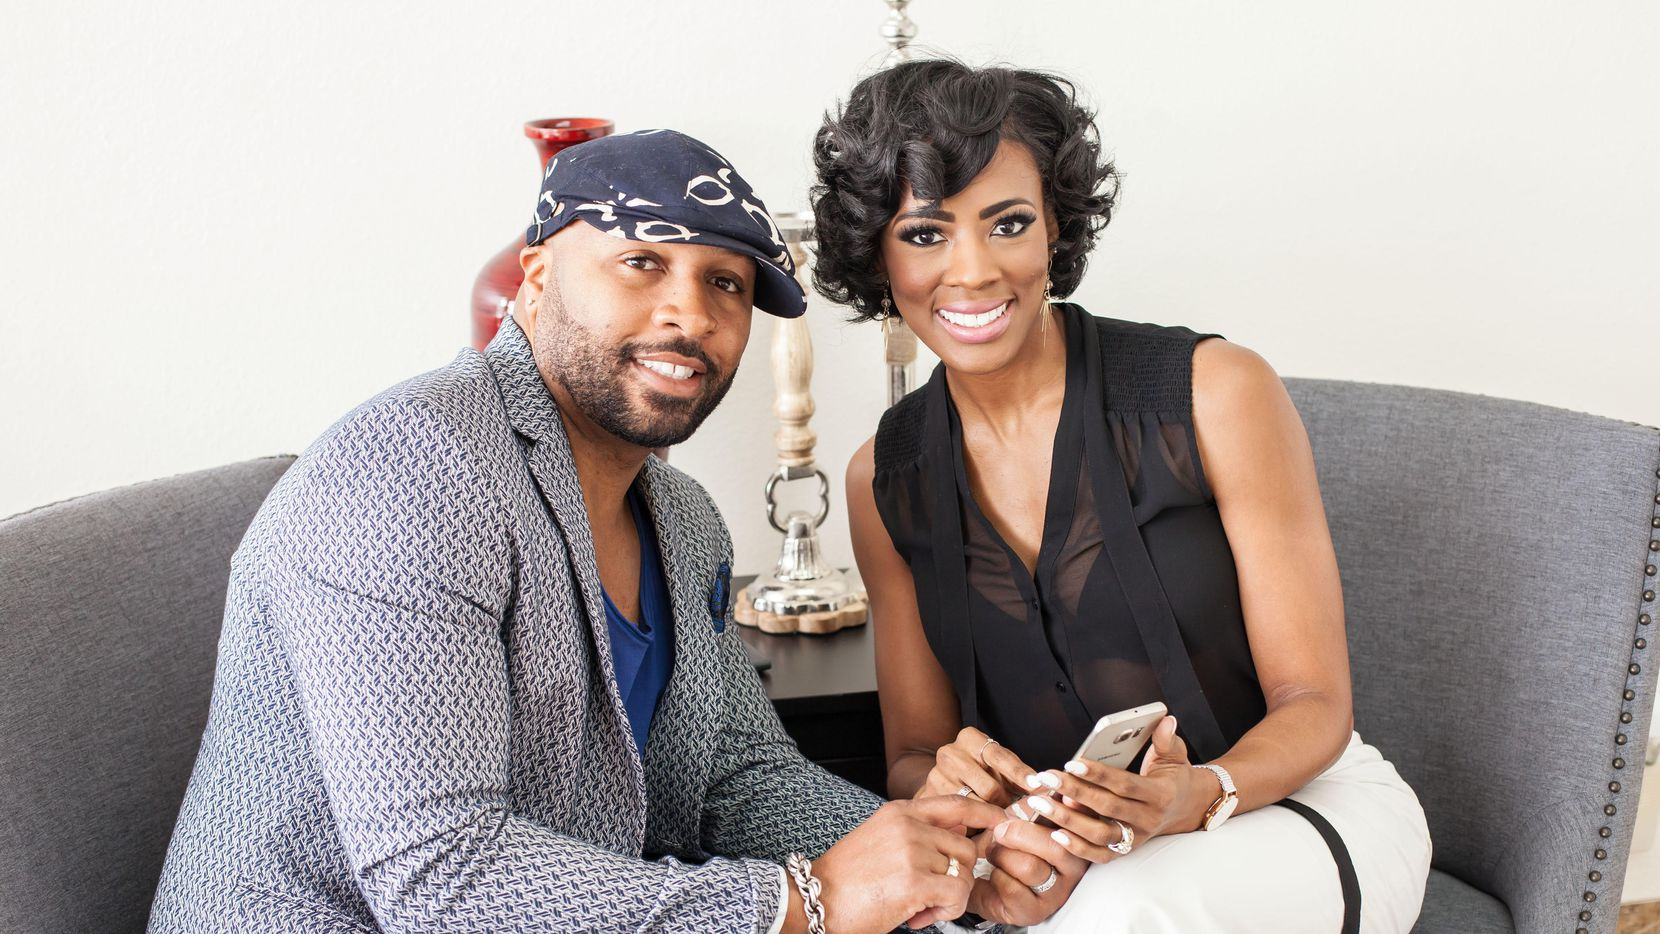 Courtney and Tye Caldwell started ShearShare after Tye, a salon owner, got calls from barbers who wanted to rent space for a short amount of time. The app allows licensed barbers and cosmetologists the flexibility of renting space in a salon without signing a long-term contract. For salons, it's a way to fill vacant spots.